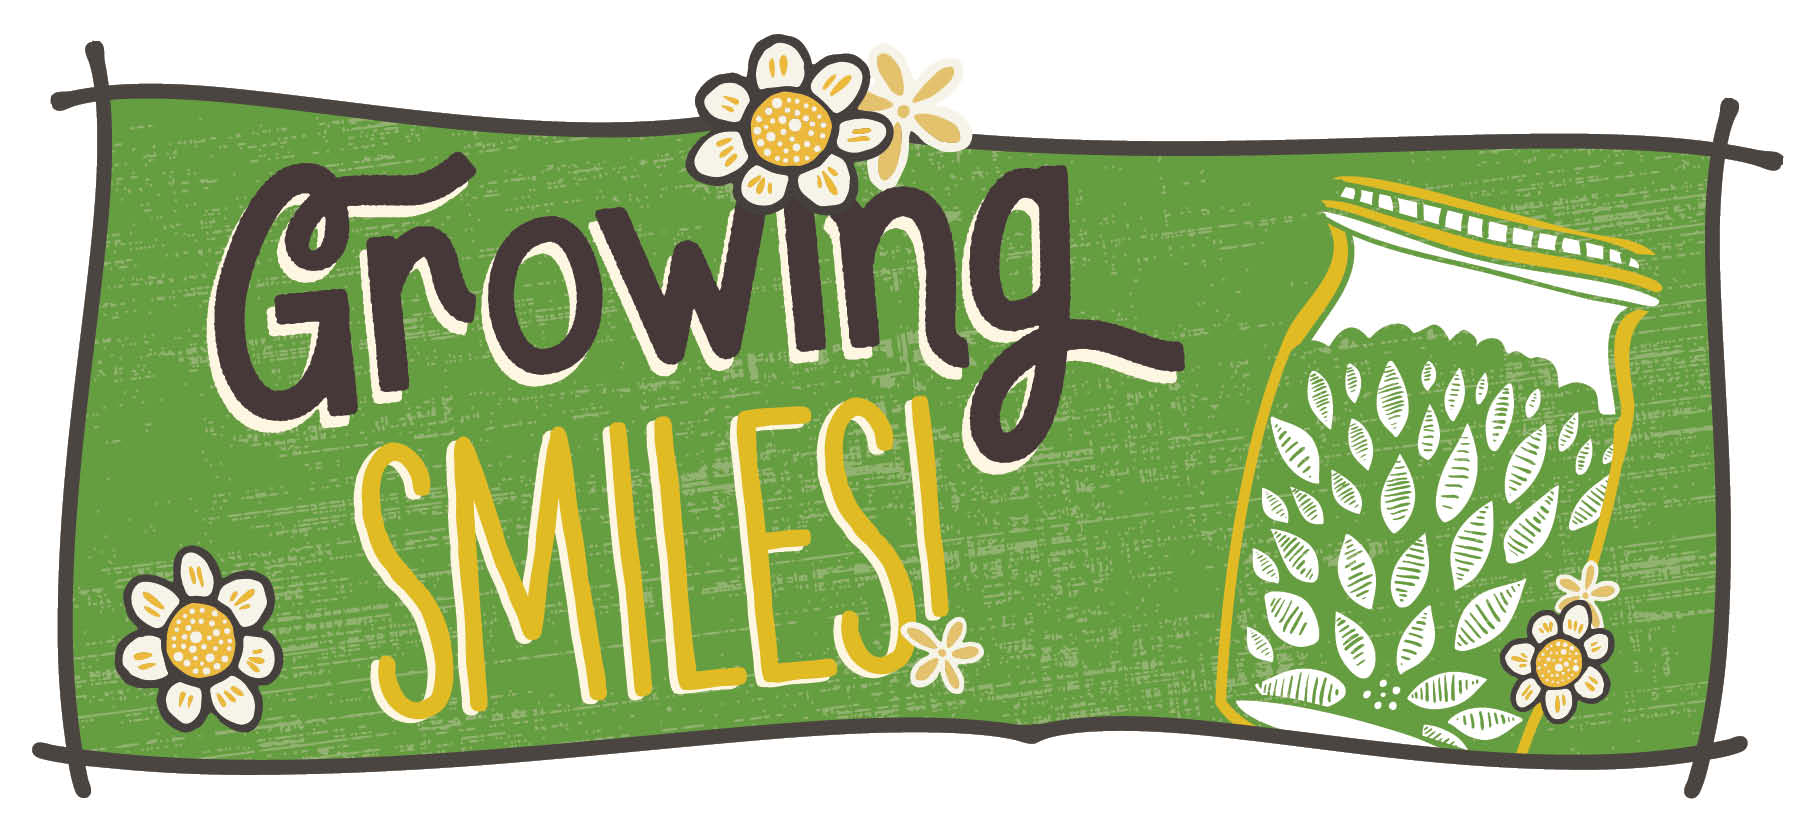 Growing Smiles monthly contest